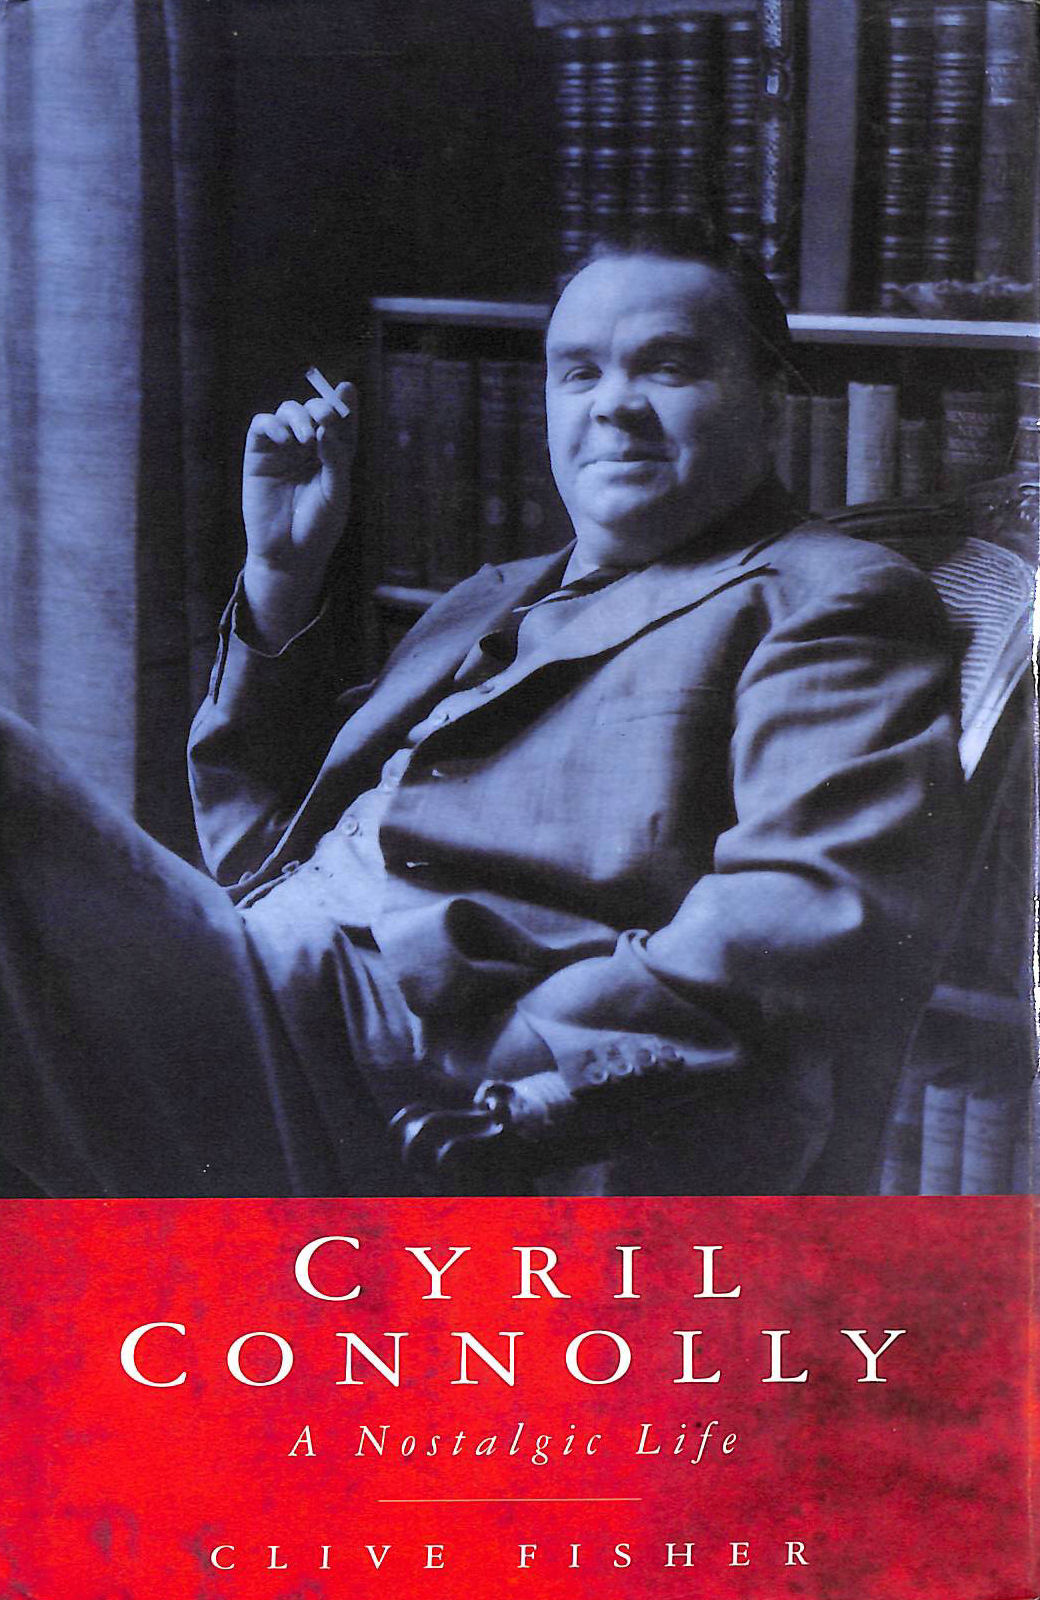 Image for Cyril Connolly: A Nostalgic Life